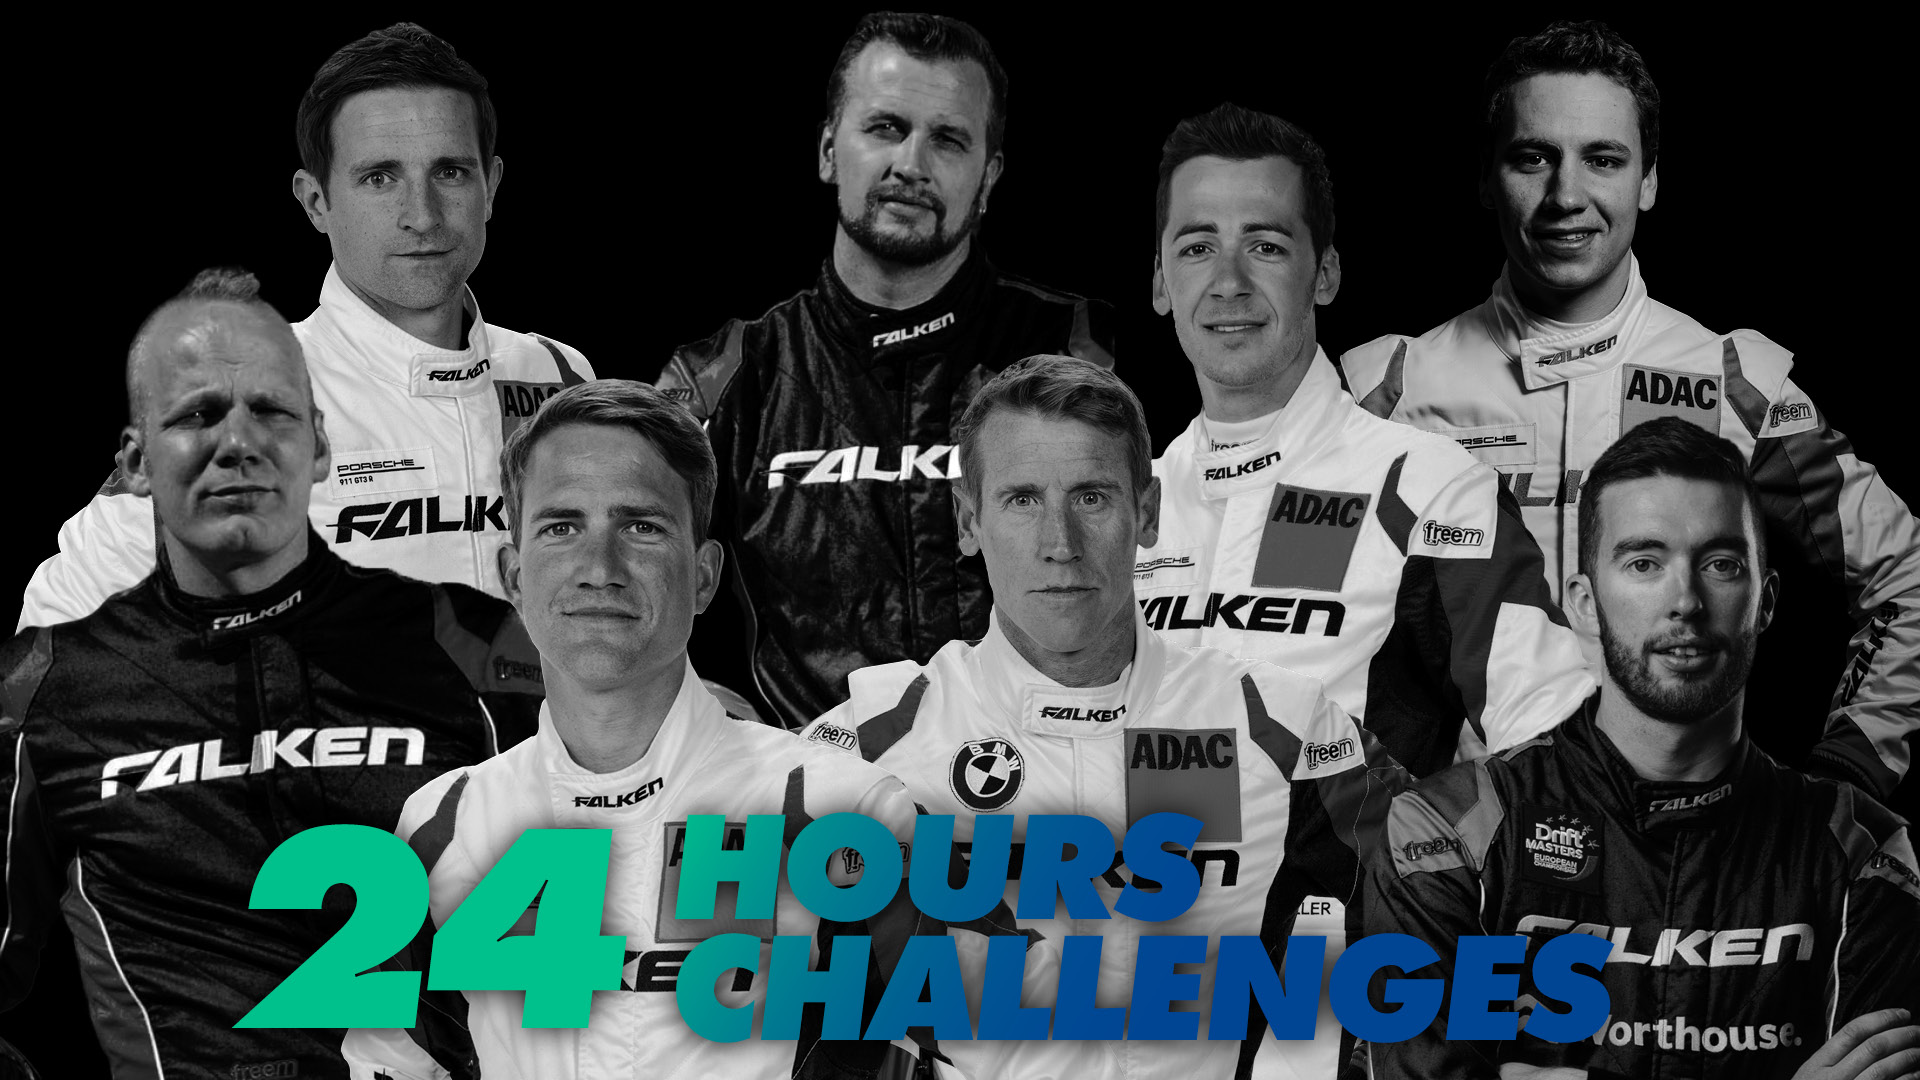 24 challenges in 24 hours – Falken's drivers get an alternative endurance event with #24in24h